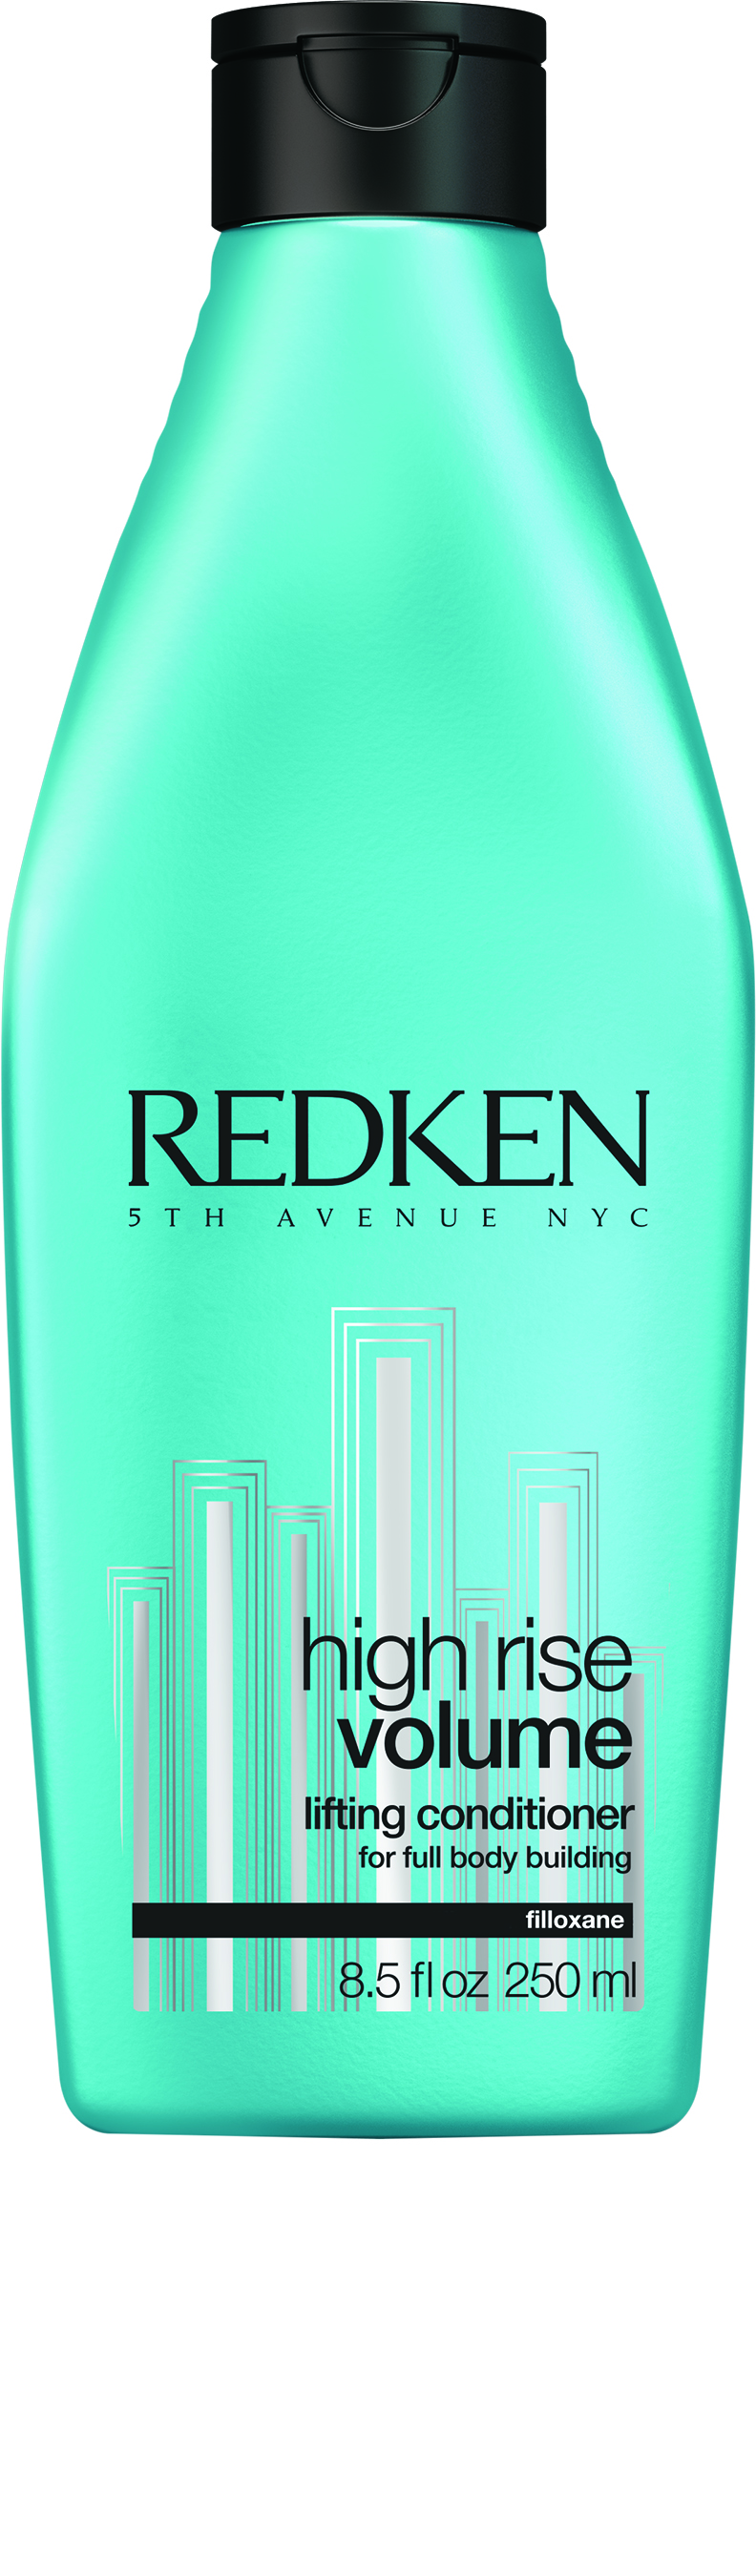 Redken High Rise Volume Lifting Conditioner contains a lightweight, volume-boosting blend of filloxane and softening polymers, creating lift and body.